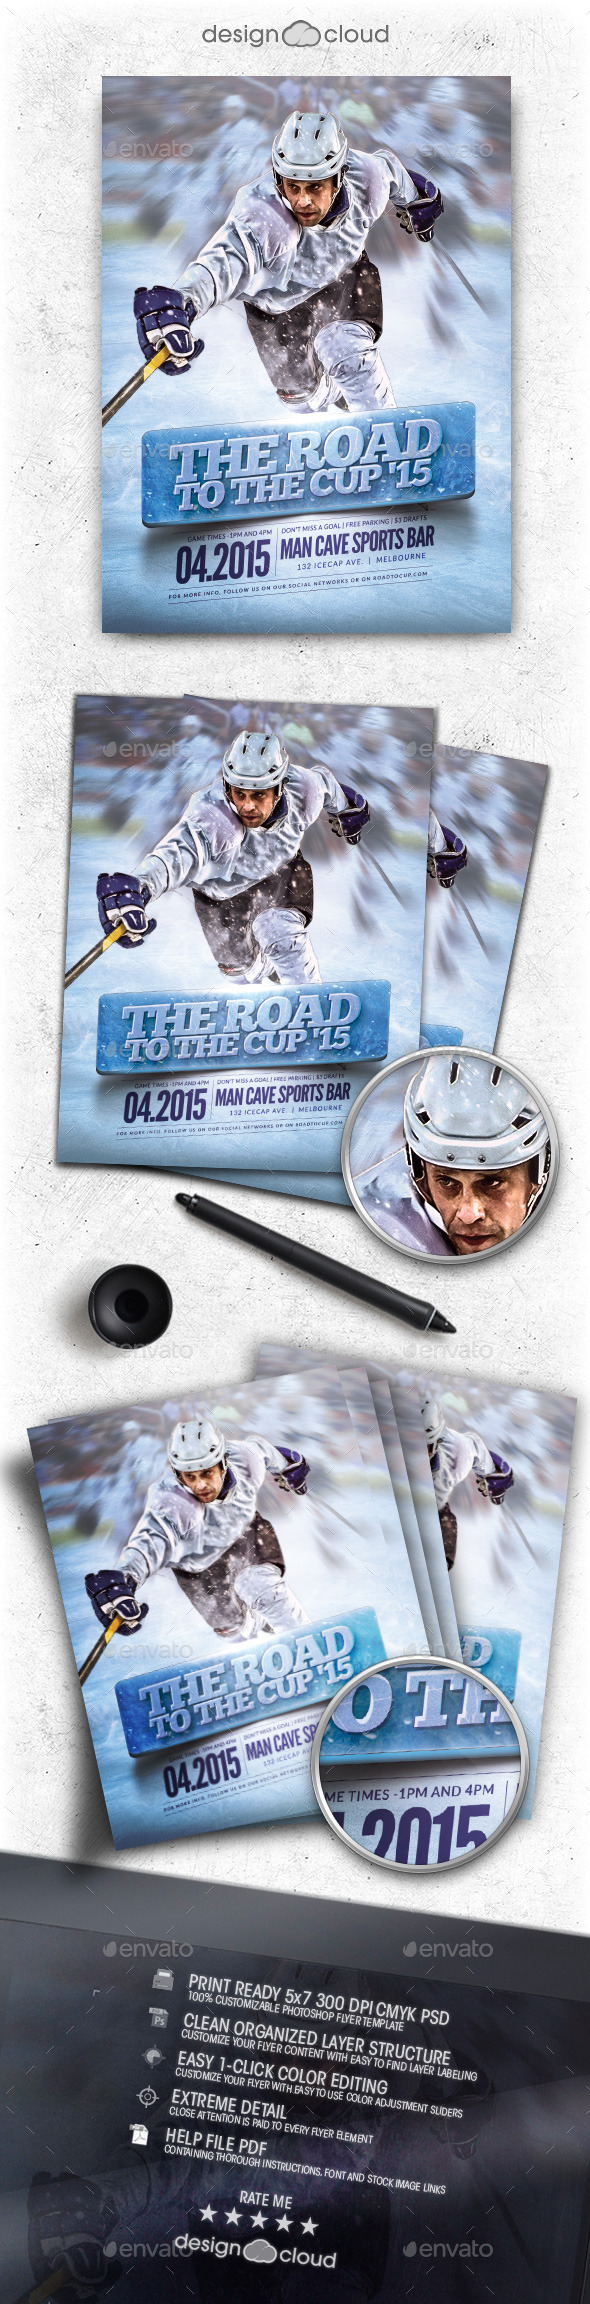 Hockey Road to the Cup '15 Flyer Template - Sports Events